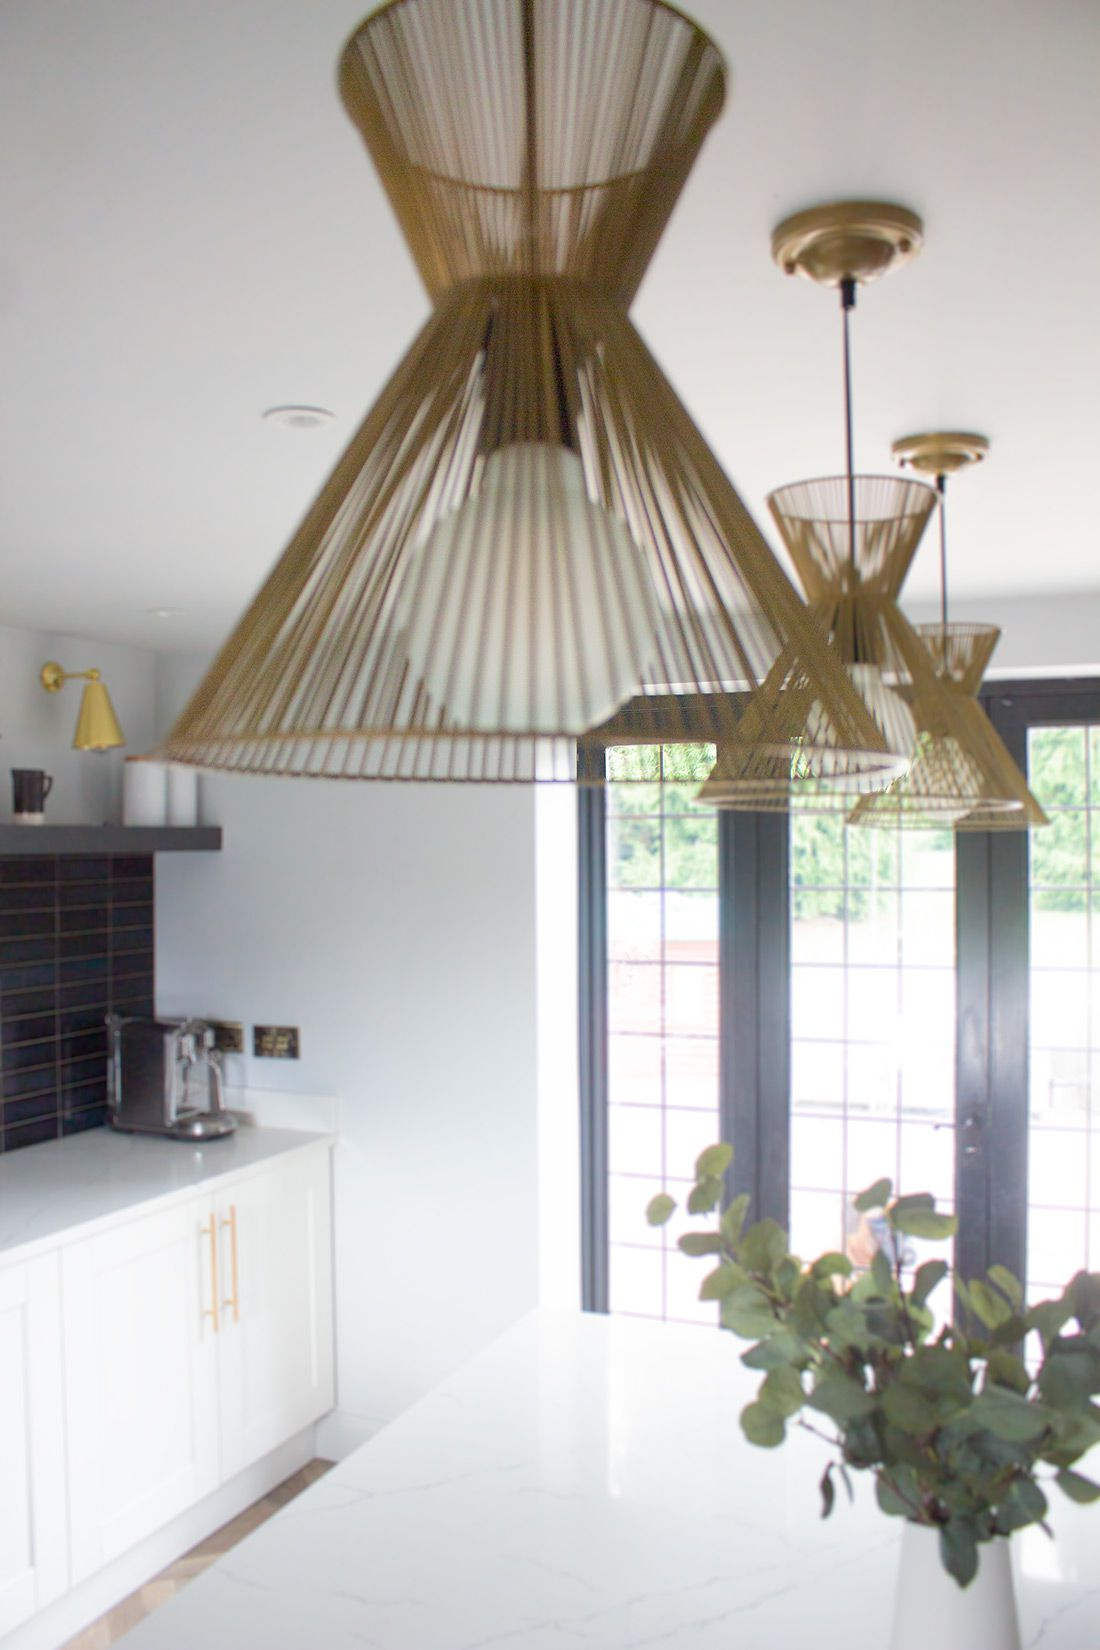 A photo showing the brass lights over the island, with the newly painted black French doors in the background.